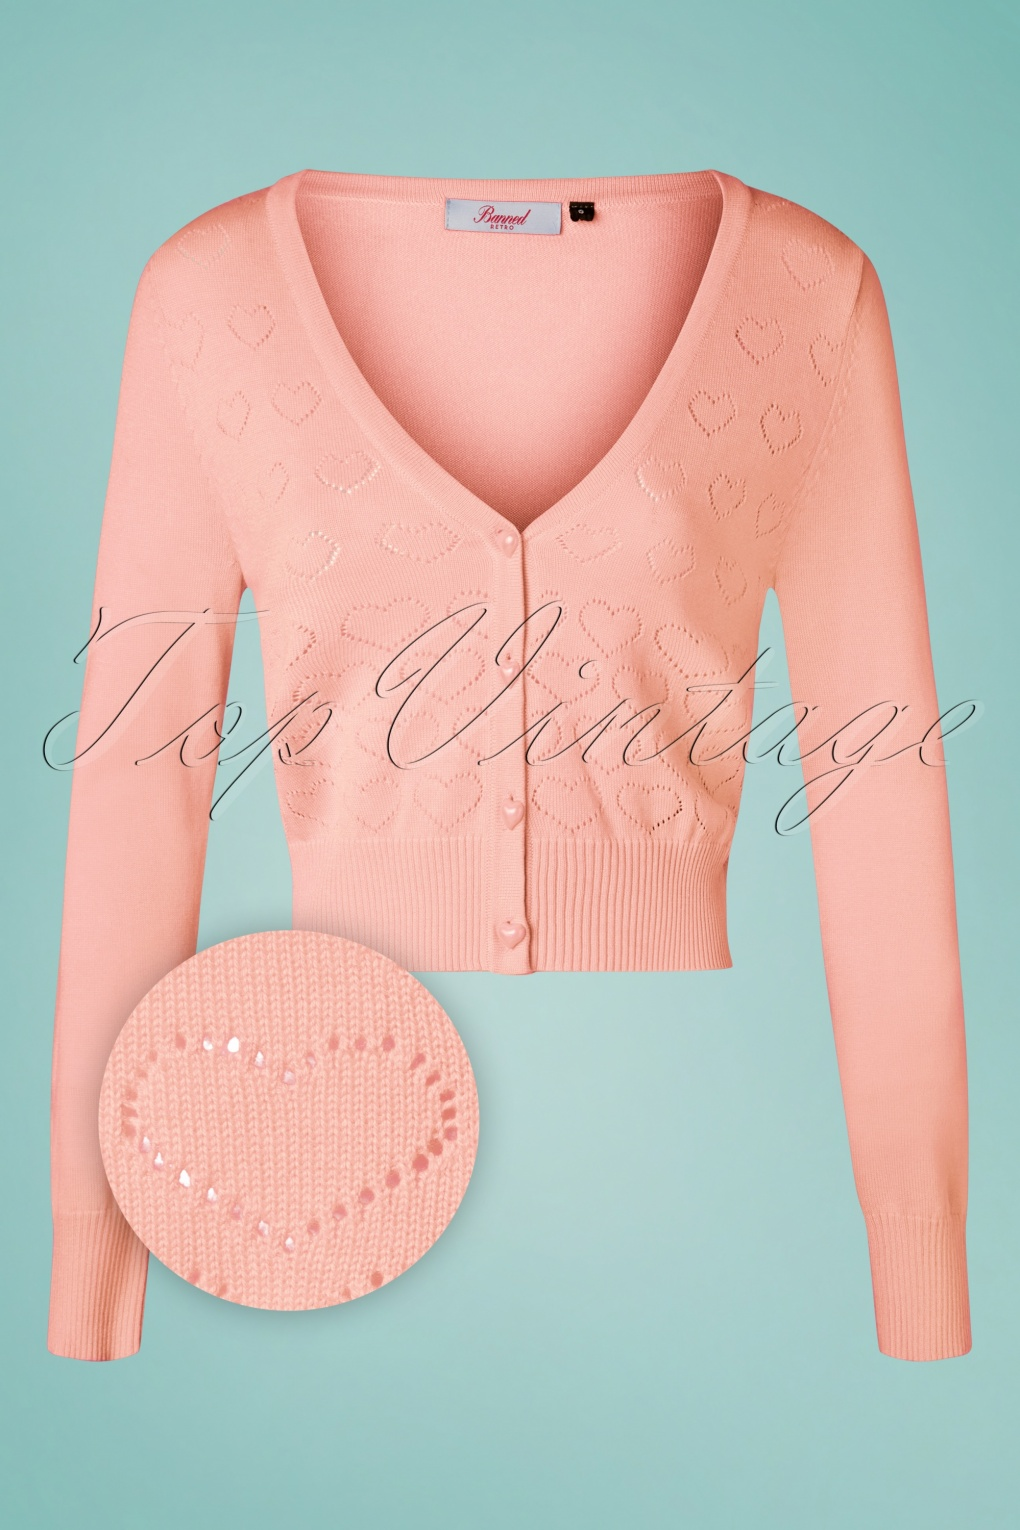 1950s Sweaters, 50s Cardigans, 50s Jumpers 50s Love Dream Cardigan in Blush Pink £38.27 AT vintagedancer.com